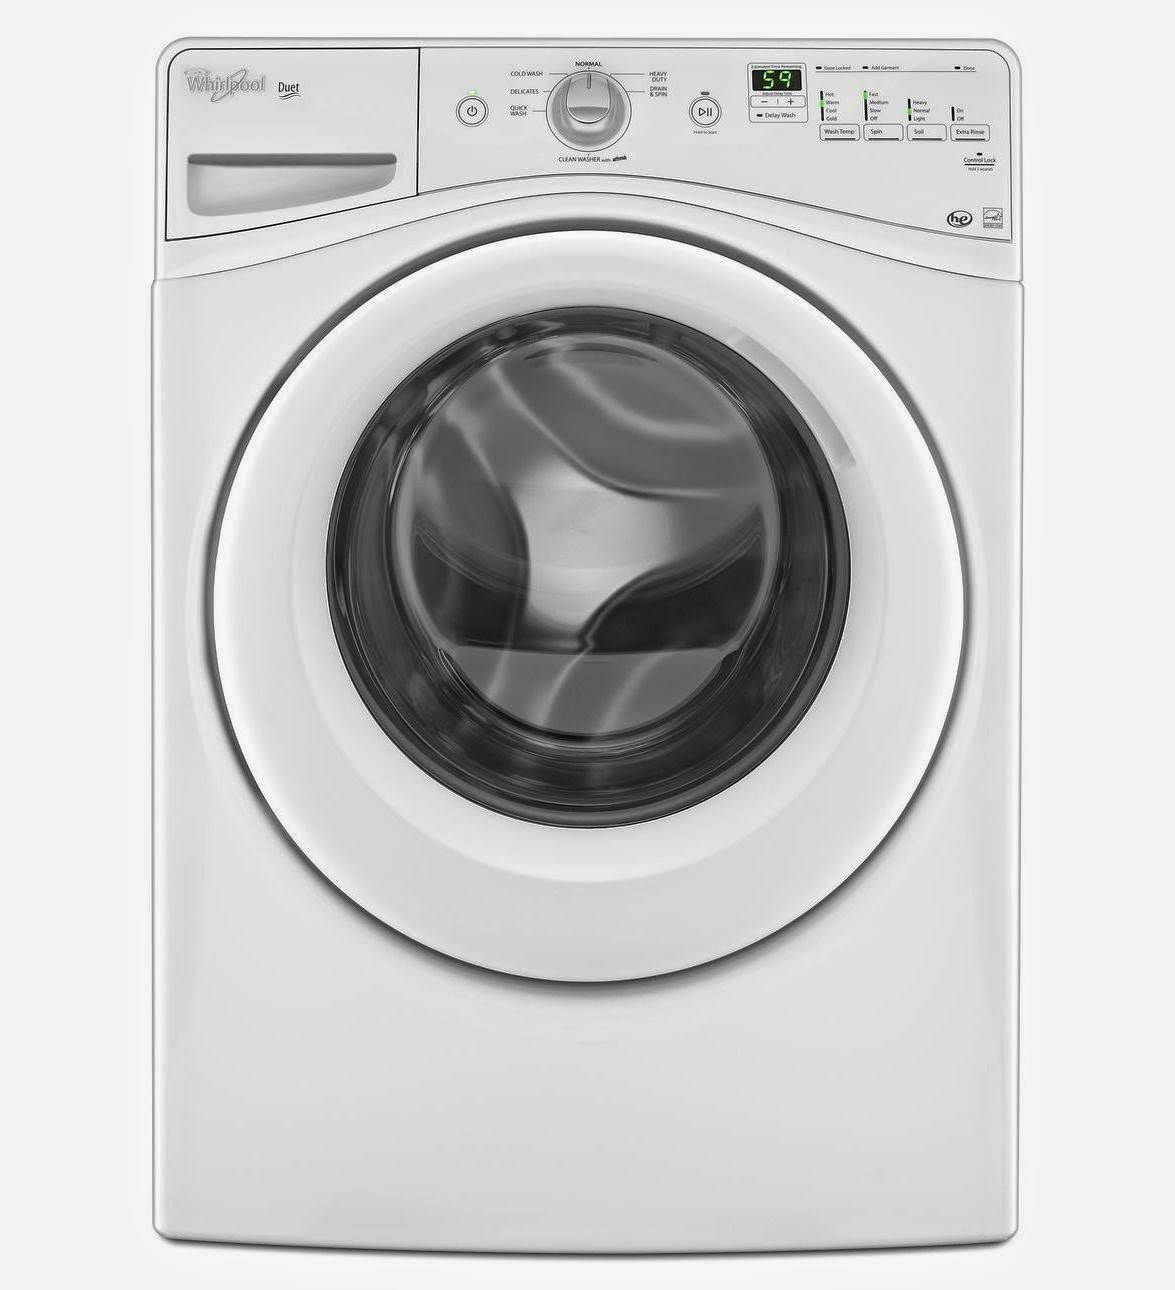 Whirlpool washer june 2014 - Whirlpool duet washer and dryer ...